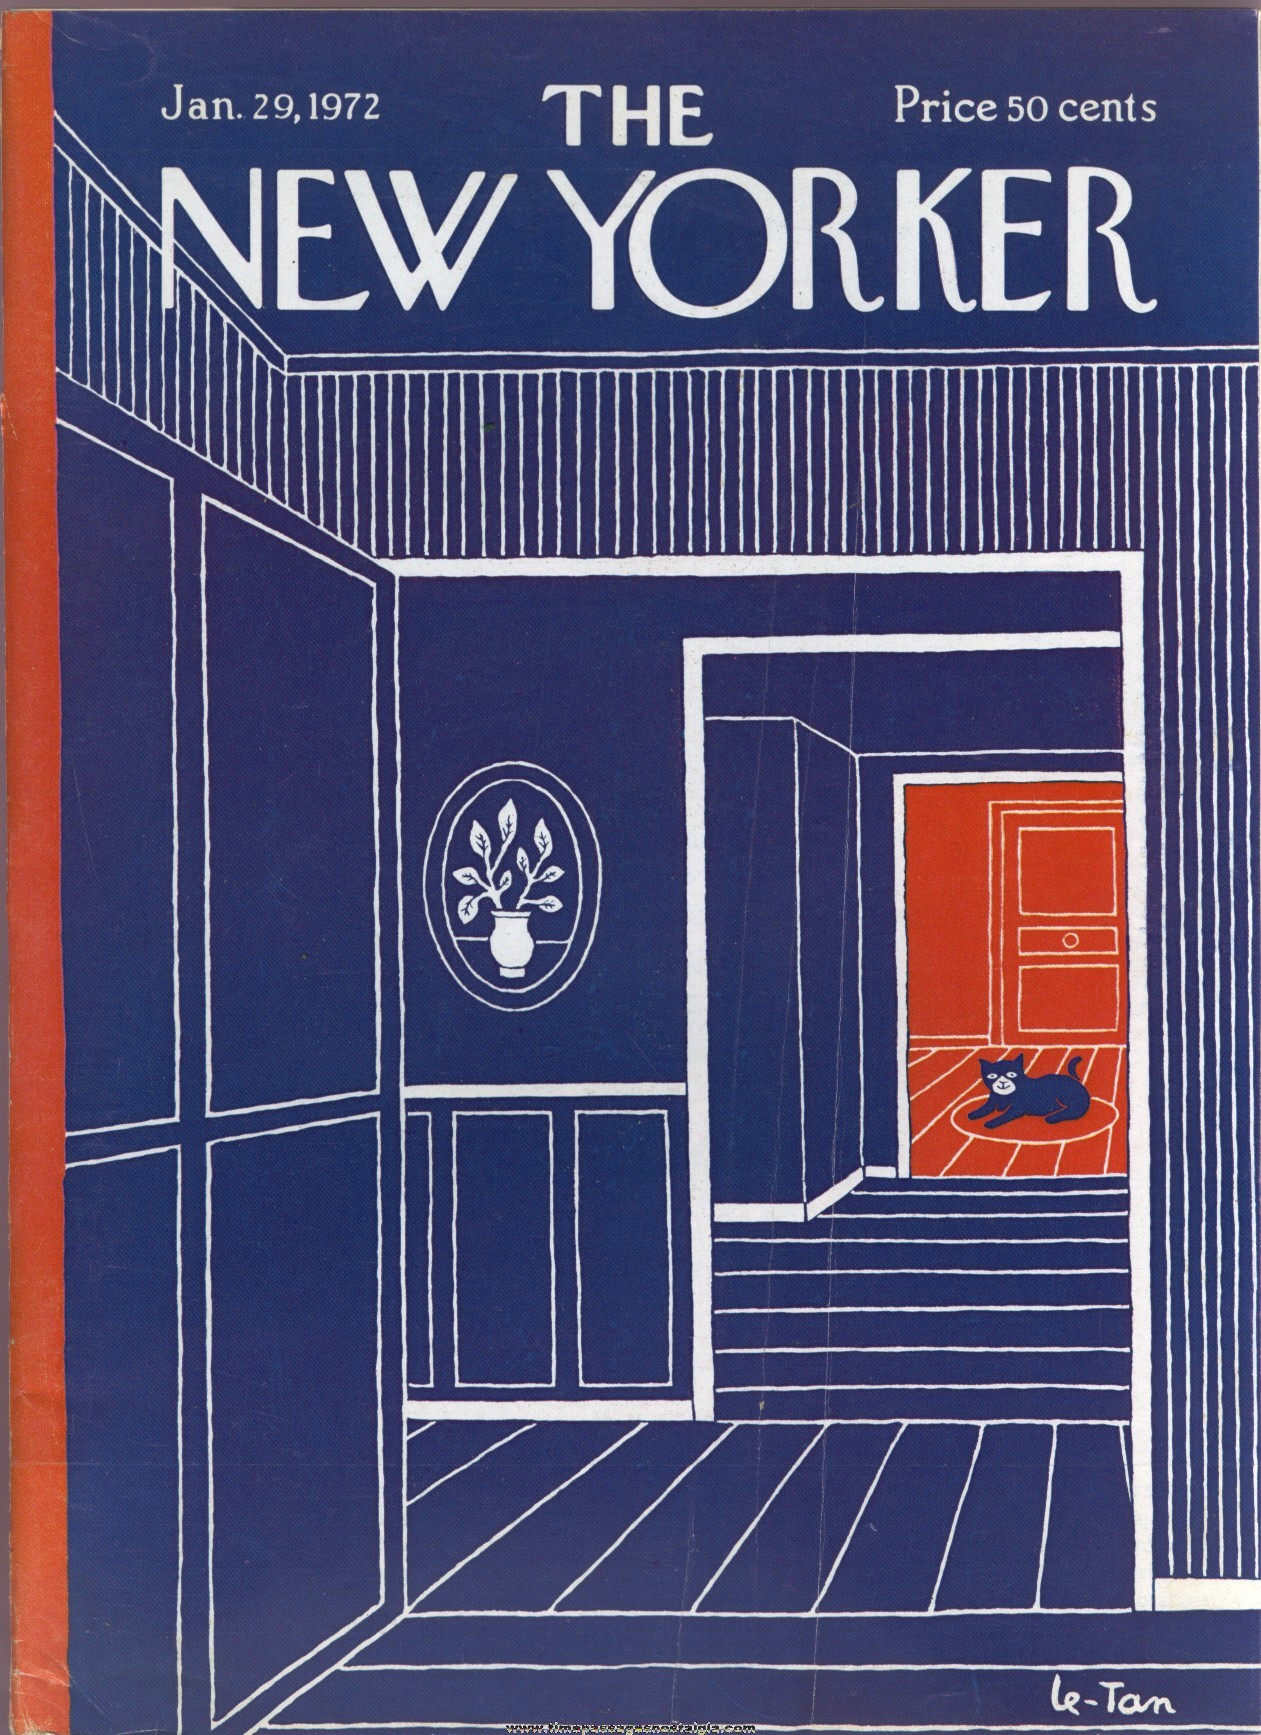 New Yorker Magazine - January 29, 1972 - Cover by Pierre Le-Tan